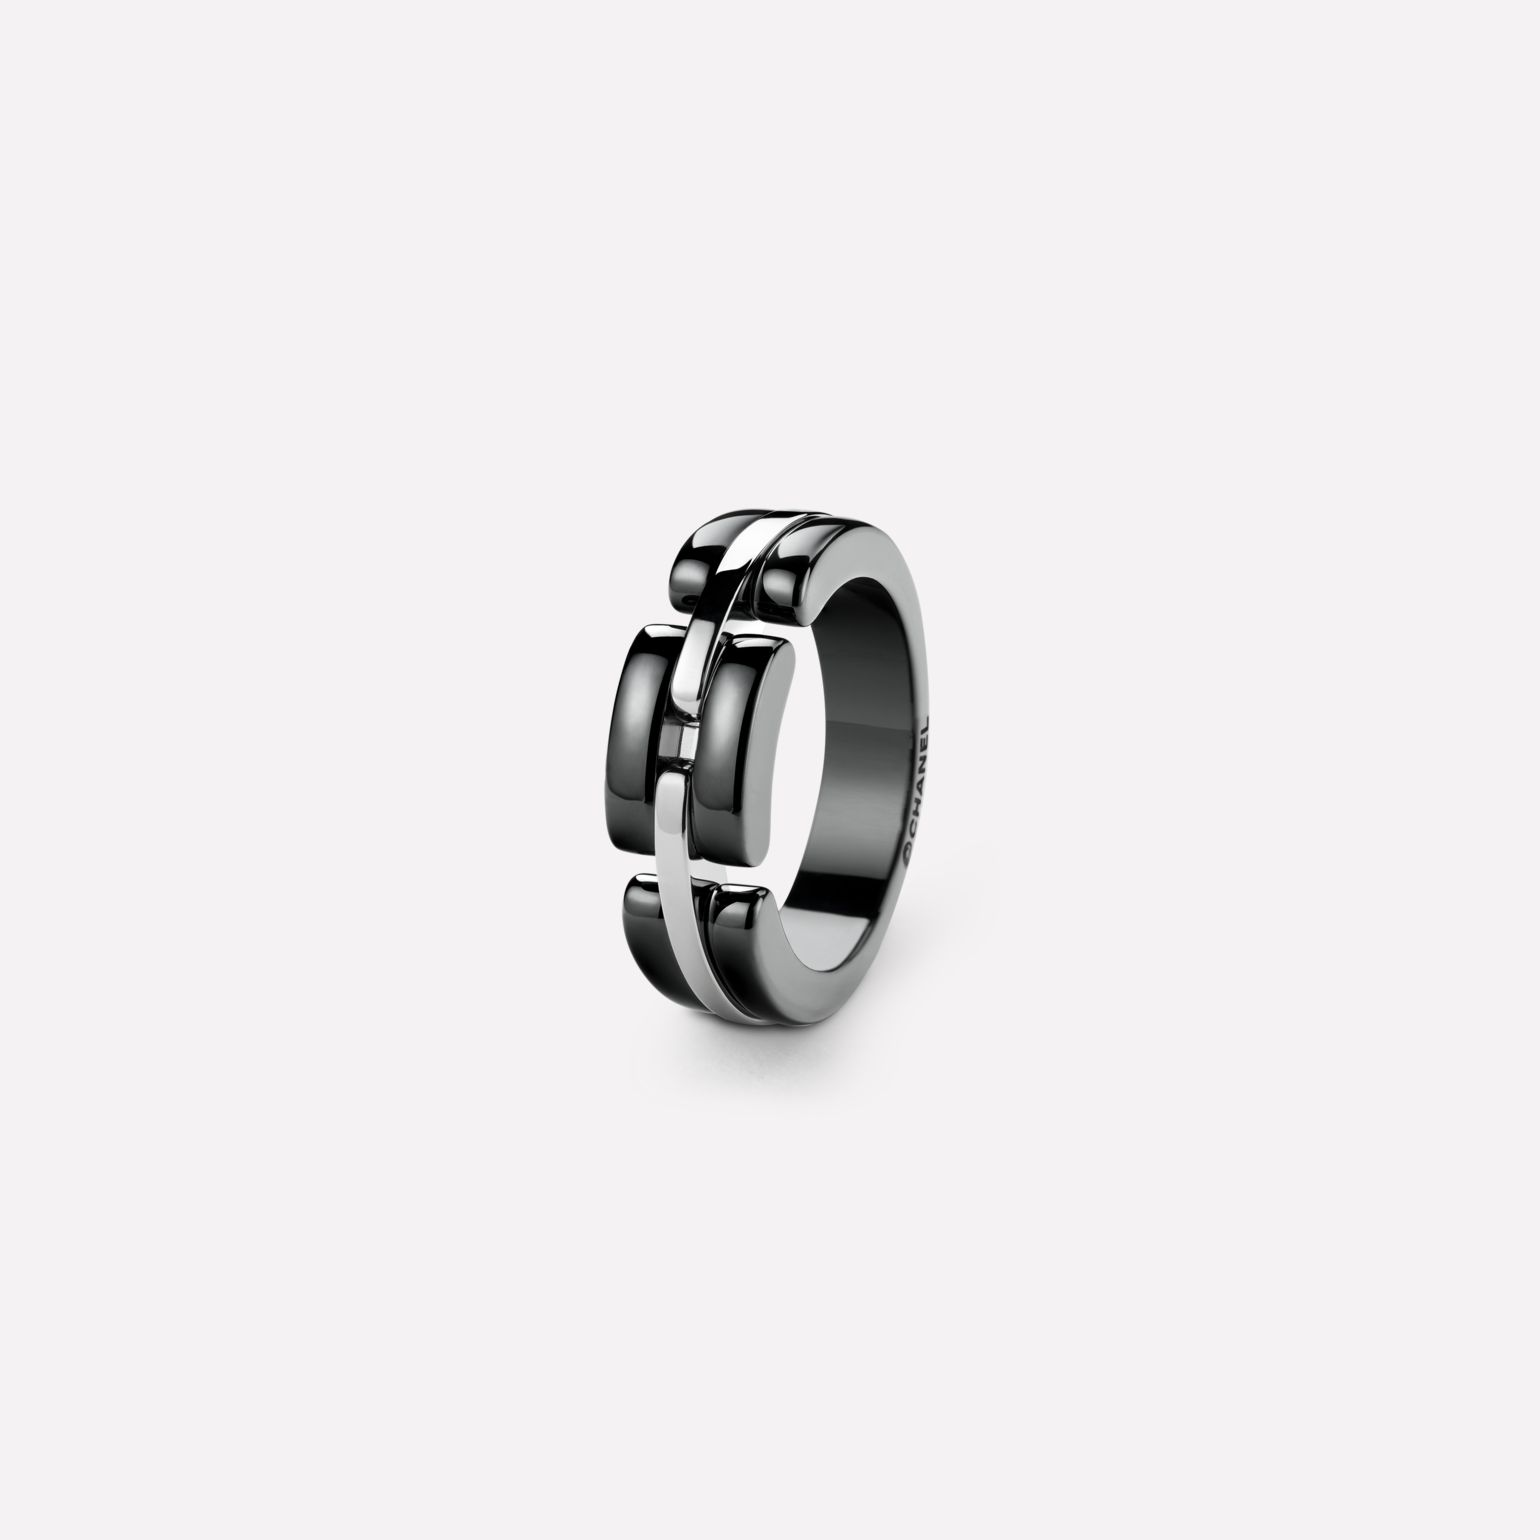 Ultra ring Ultra ring, medium version, in black ceramic, 18K white gold